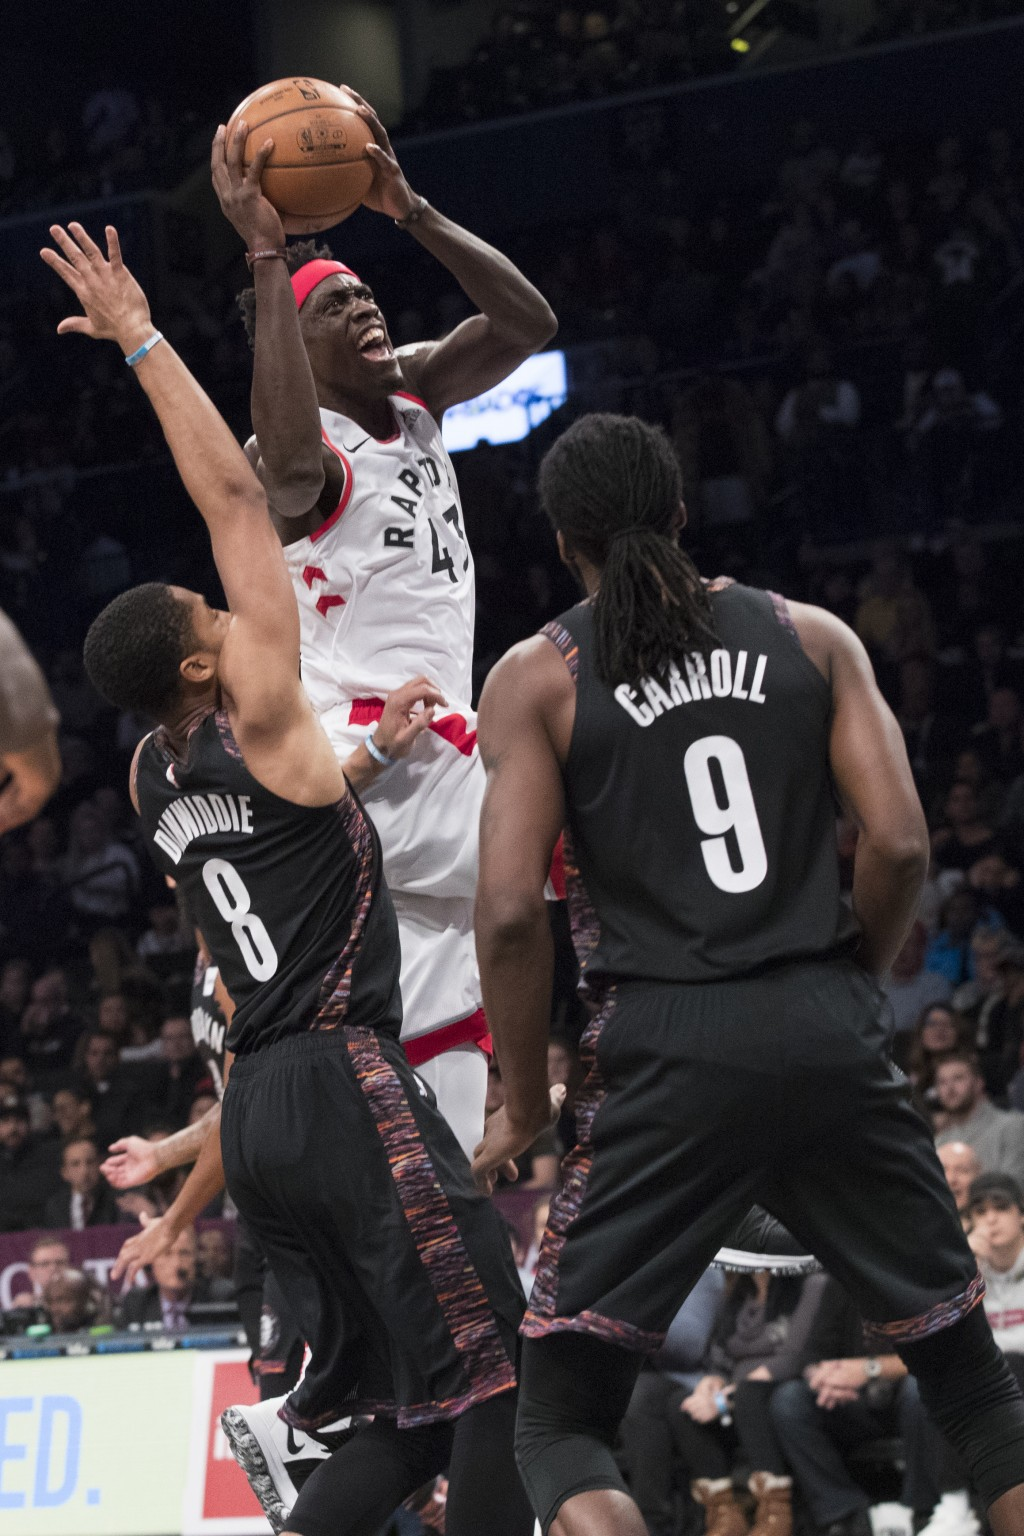 Toronto Raptors forward Pascal Siakam (43) goes to the basket against Brooklyn Nets guard Spencer Dinwiddie (8) and forward DeMarre Carroll (9) during